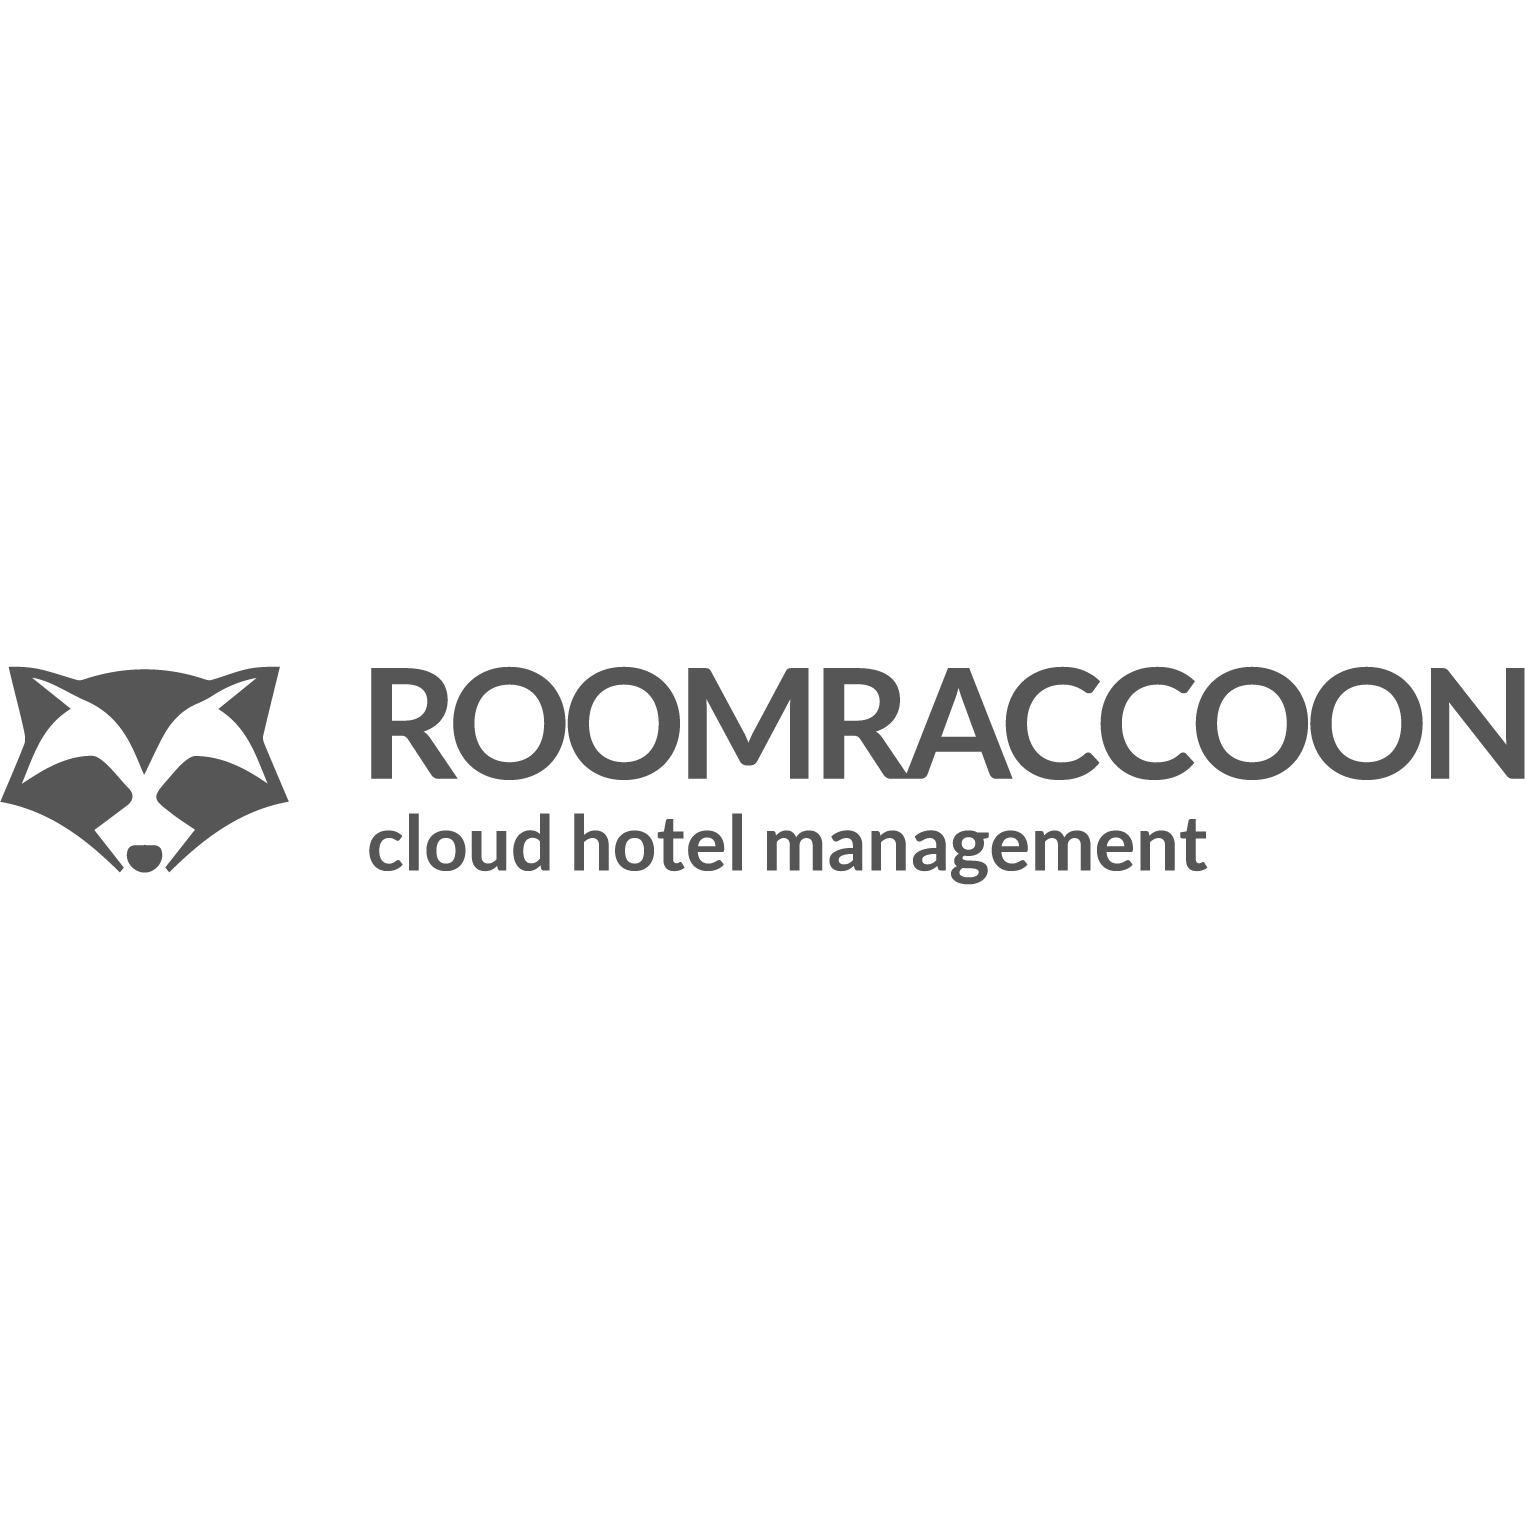 Roomraccoon-pms-partner-logo